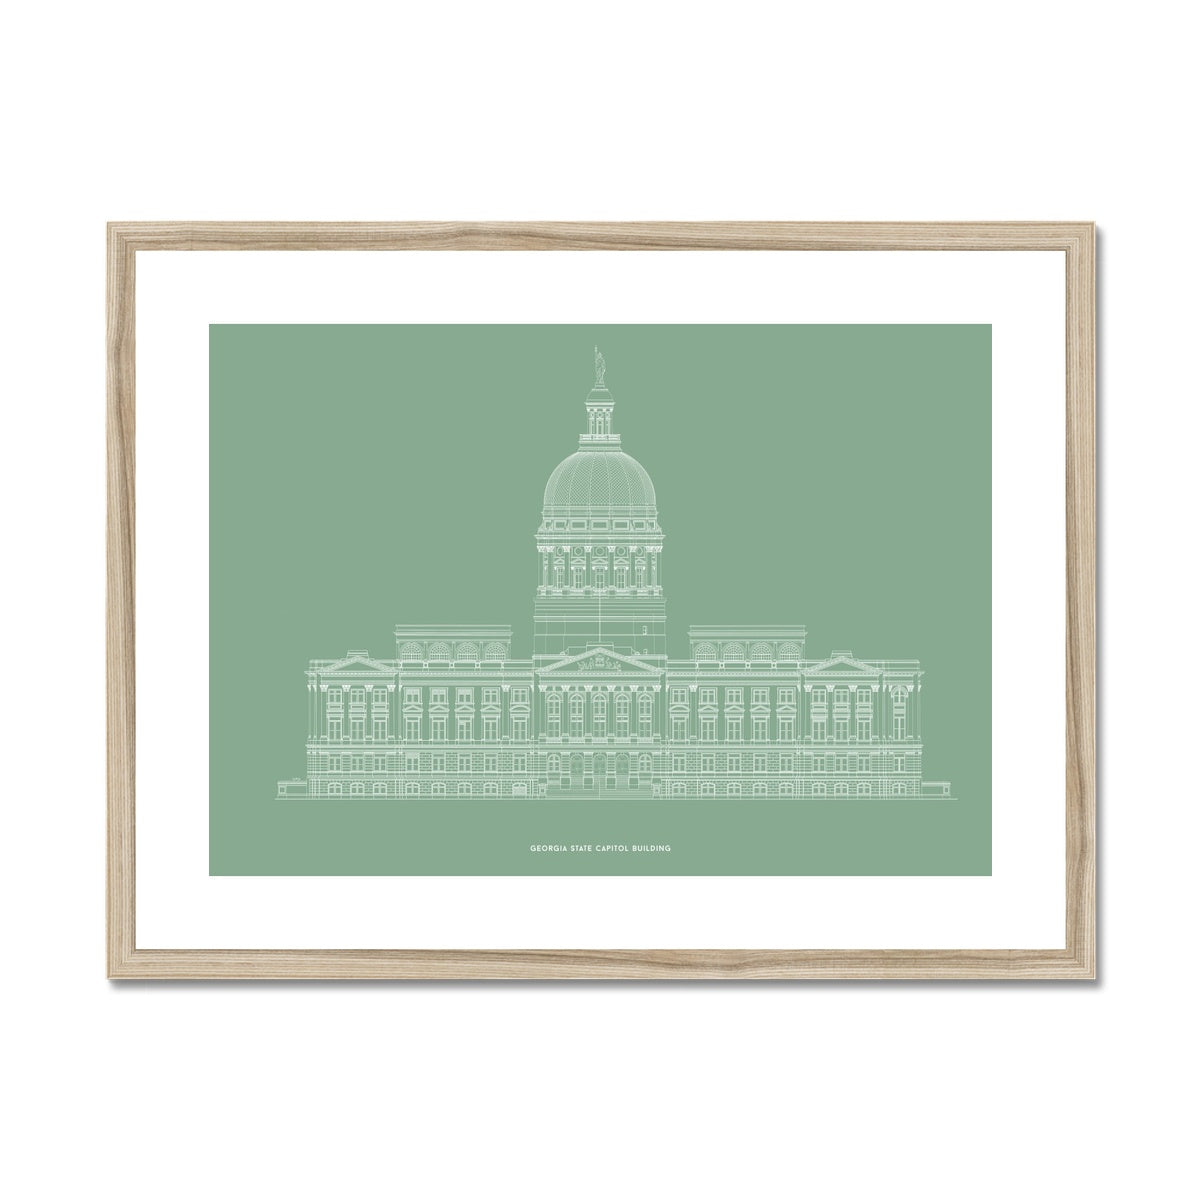 The Georgia State Capitol Building - West Elevation - Green -  Framed & Mounted Print